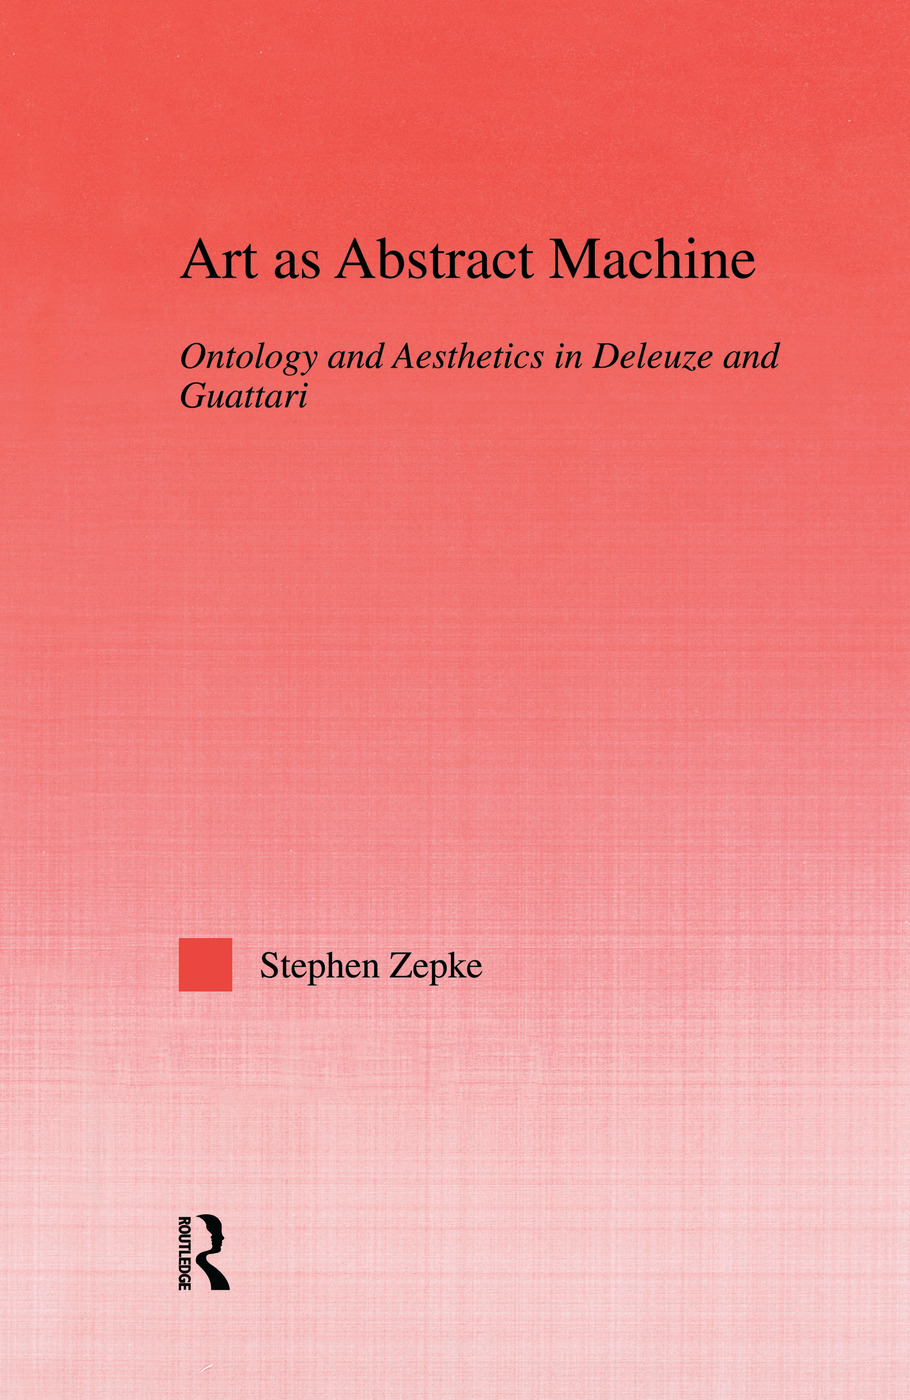 Art as Abstract Machine